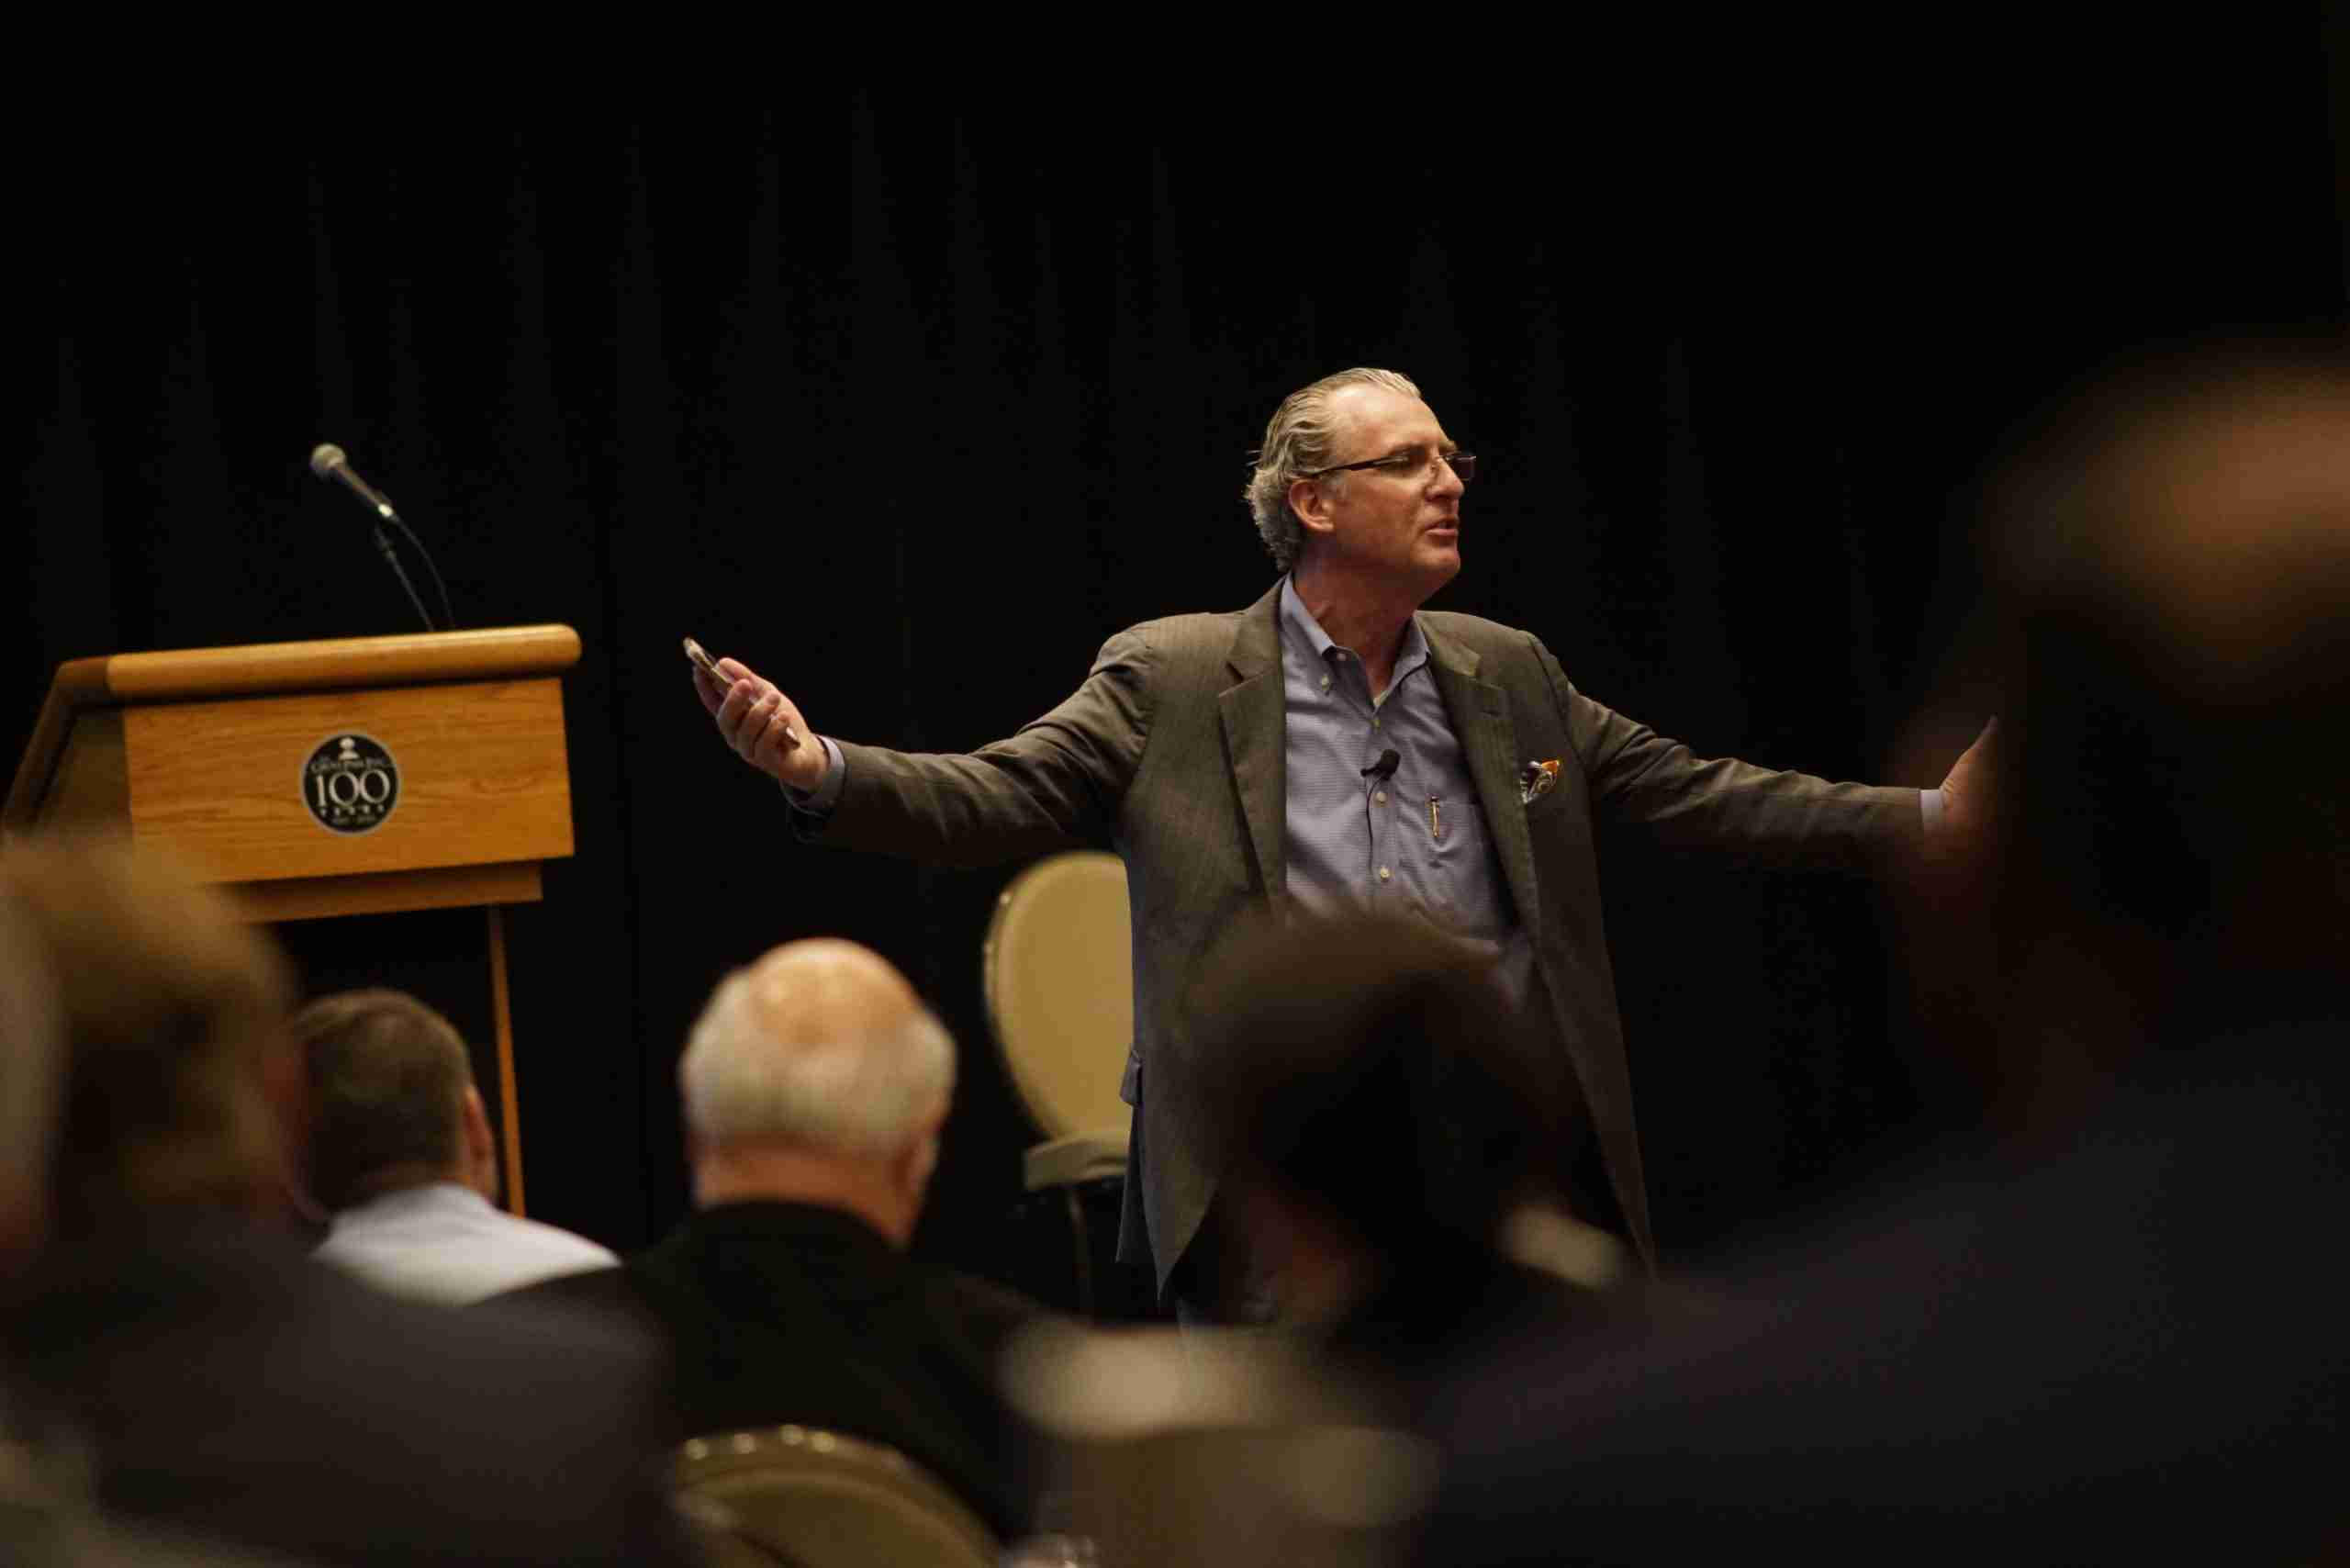 Kevin Knebl Speaking at the 2018 PACE PEO Annual Conference